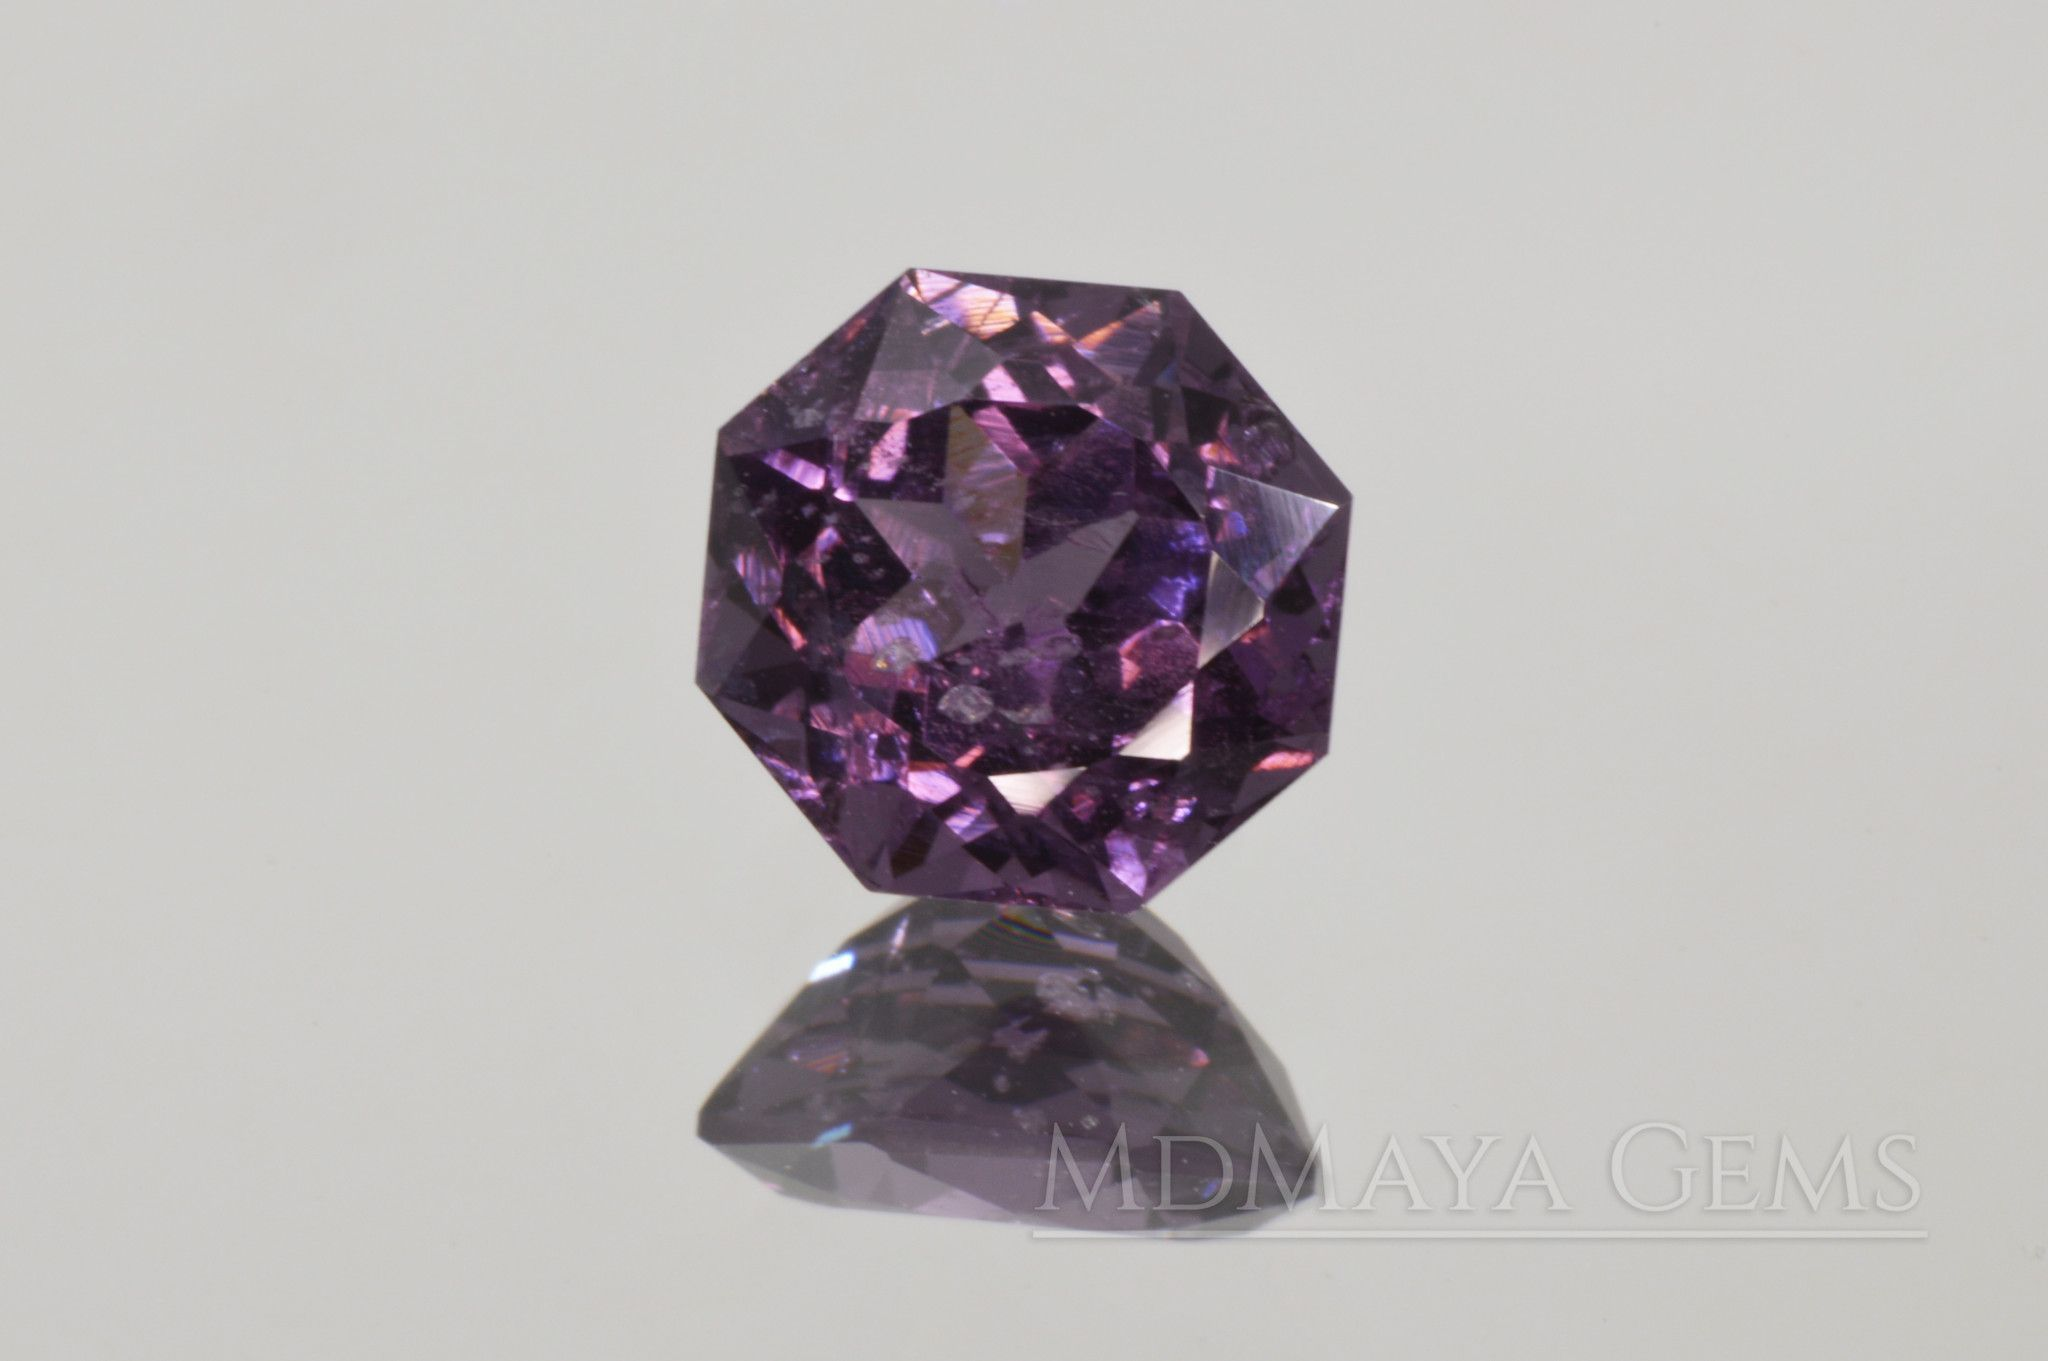 natural best also black carat lovely and this has is ametrine due as for hindi characterstics berry like its pin it in gemstone beautiful certified aquarius substone to rashi a that of called color jamun purple jamuniya